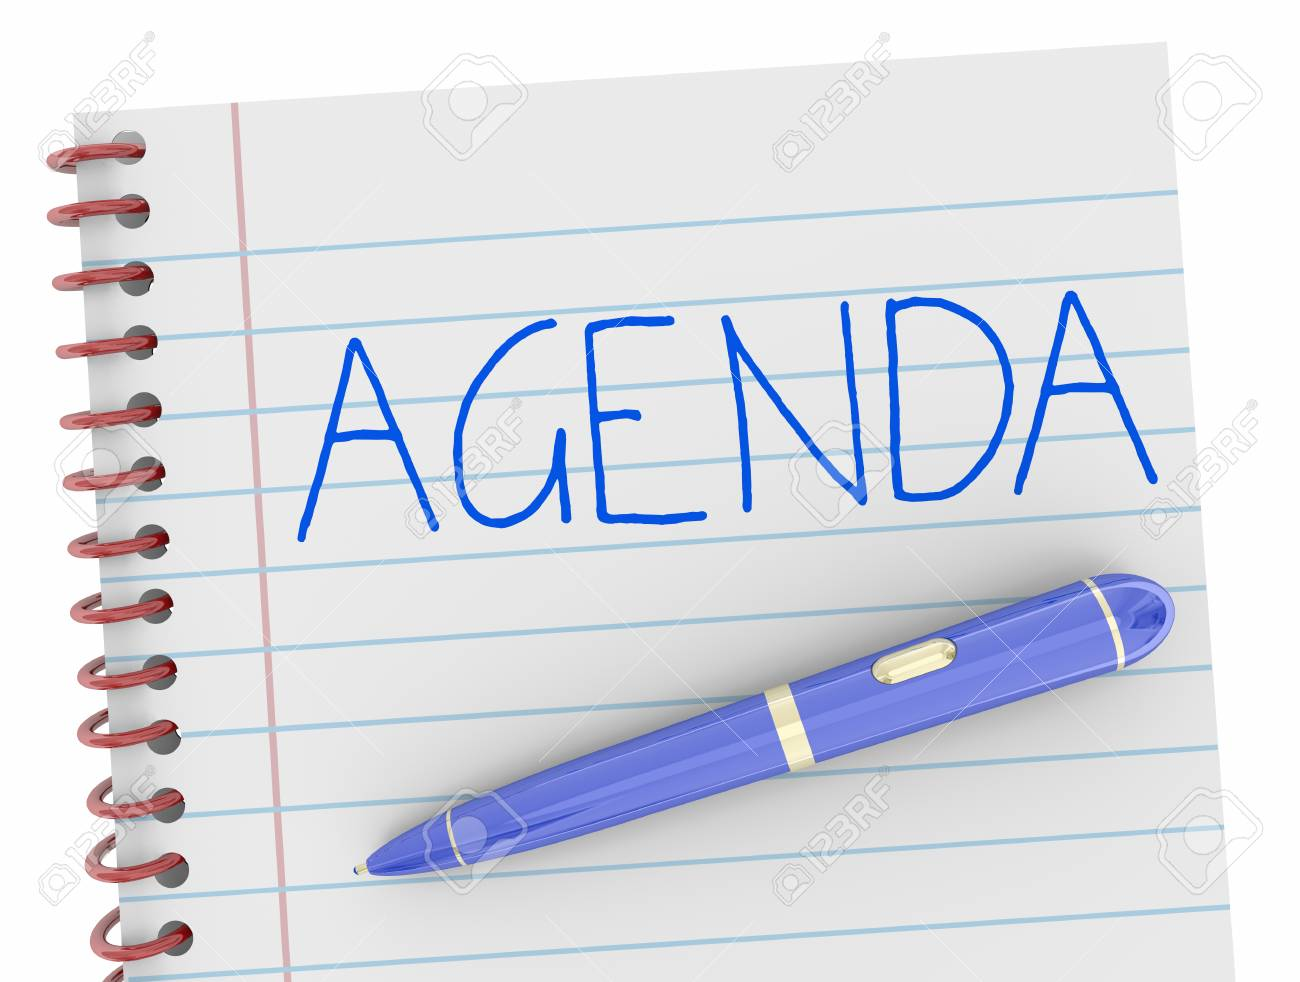 agenda pen writing word notebook plan 3d illustration stock photo